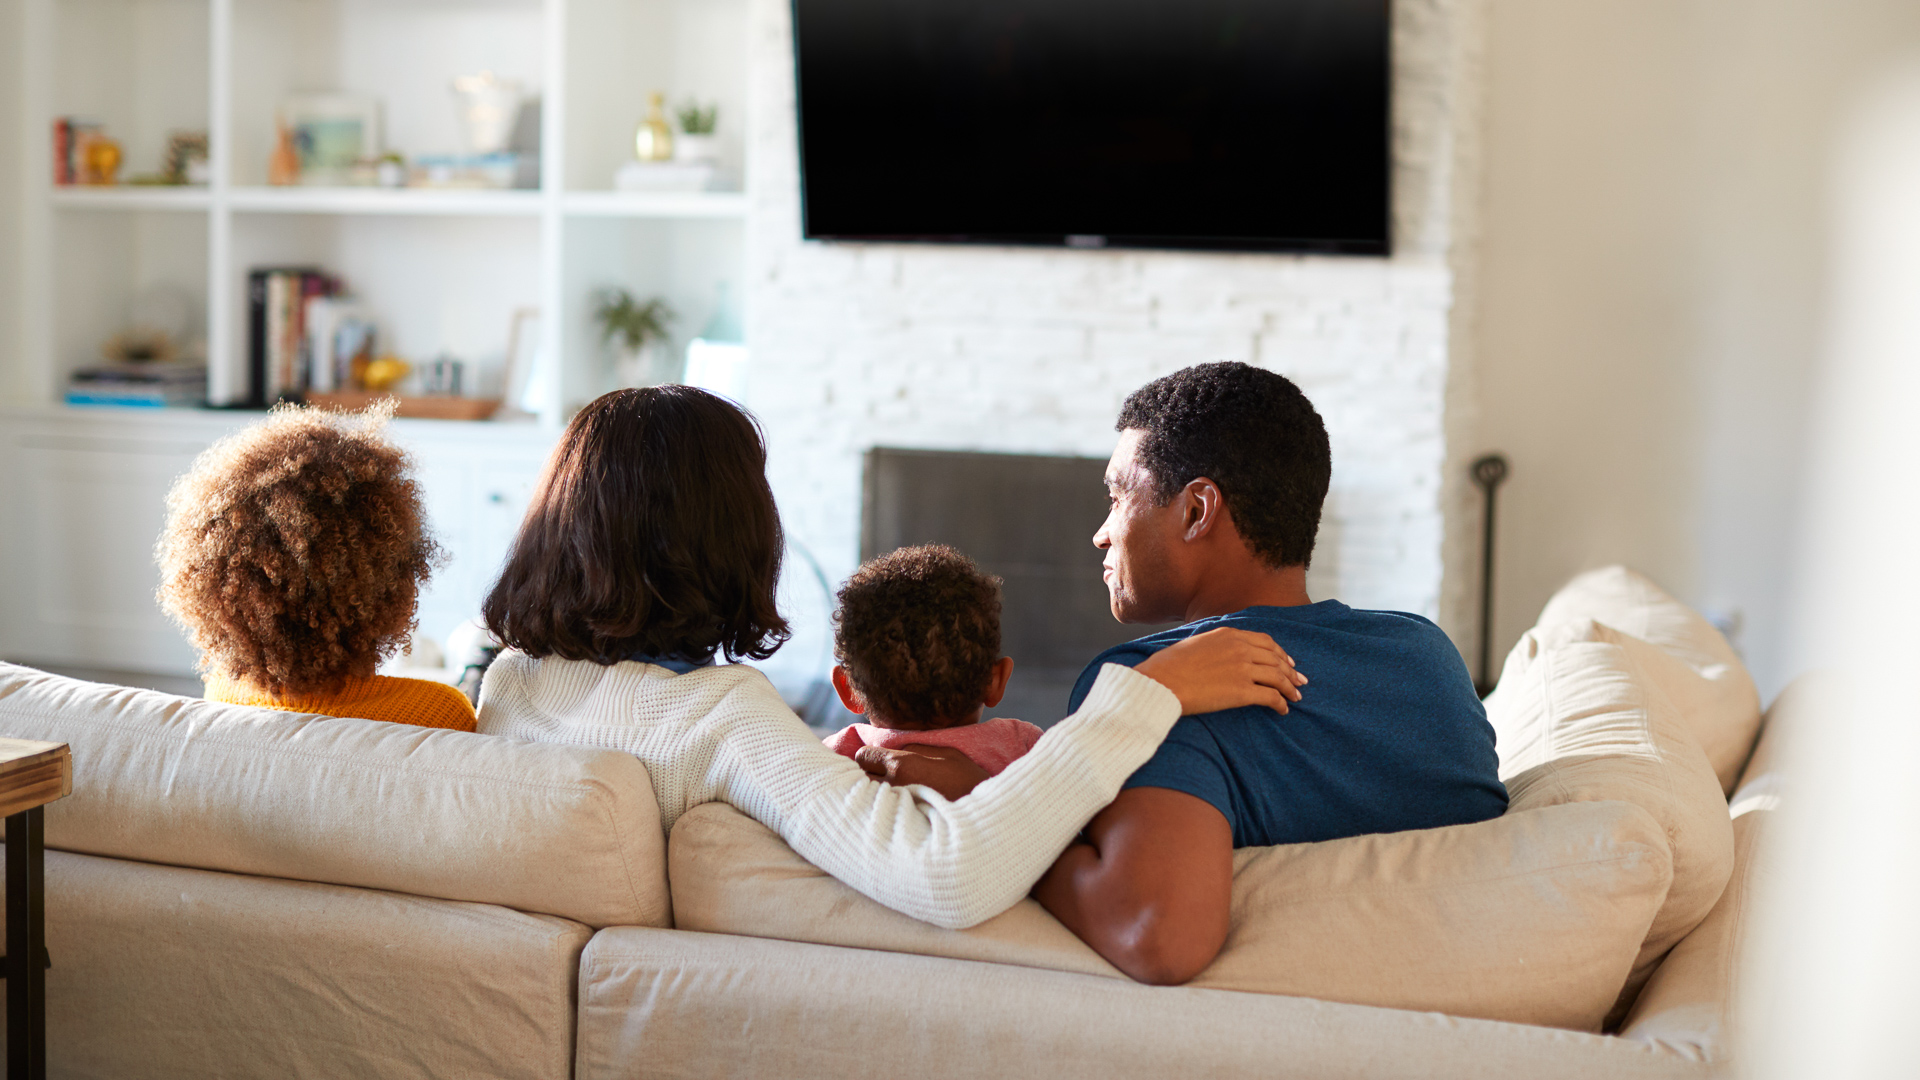 Streaming Services That Offer the Best Variety of Movies for Your Family